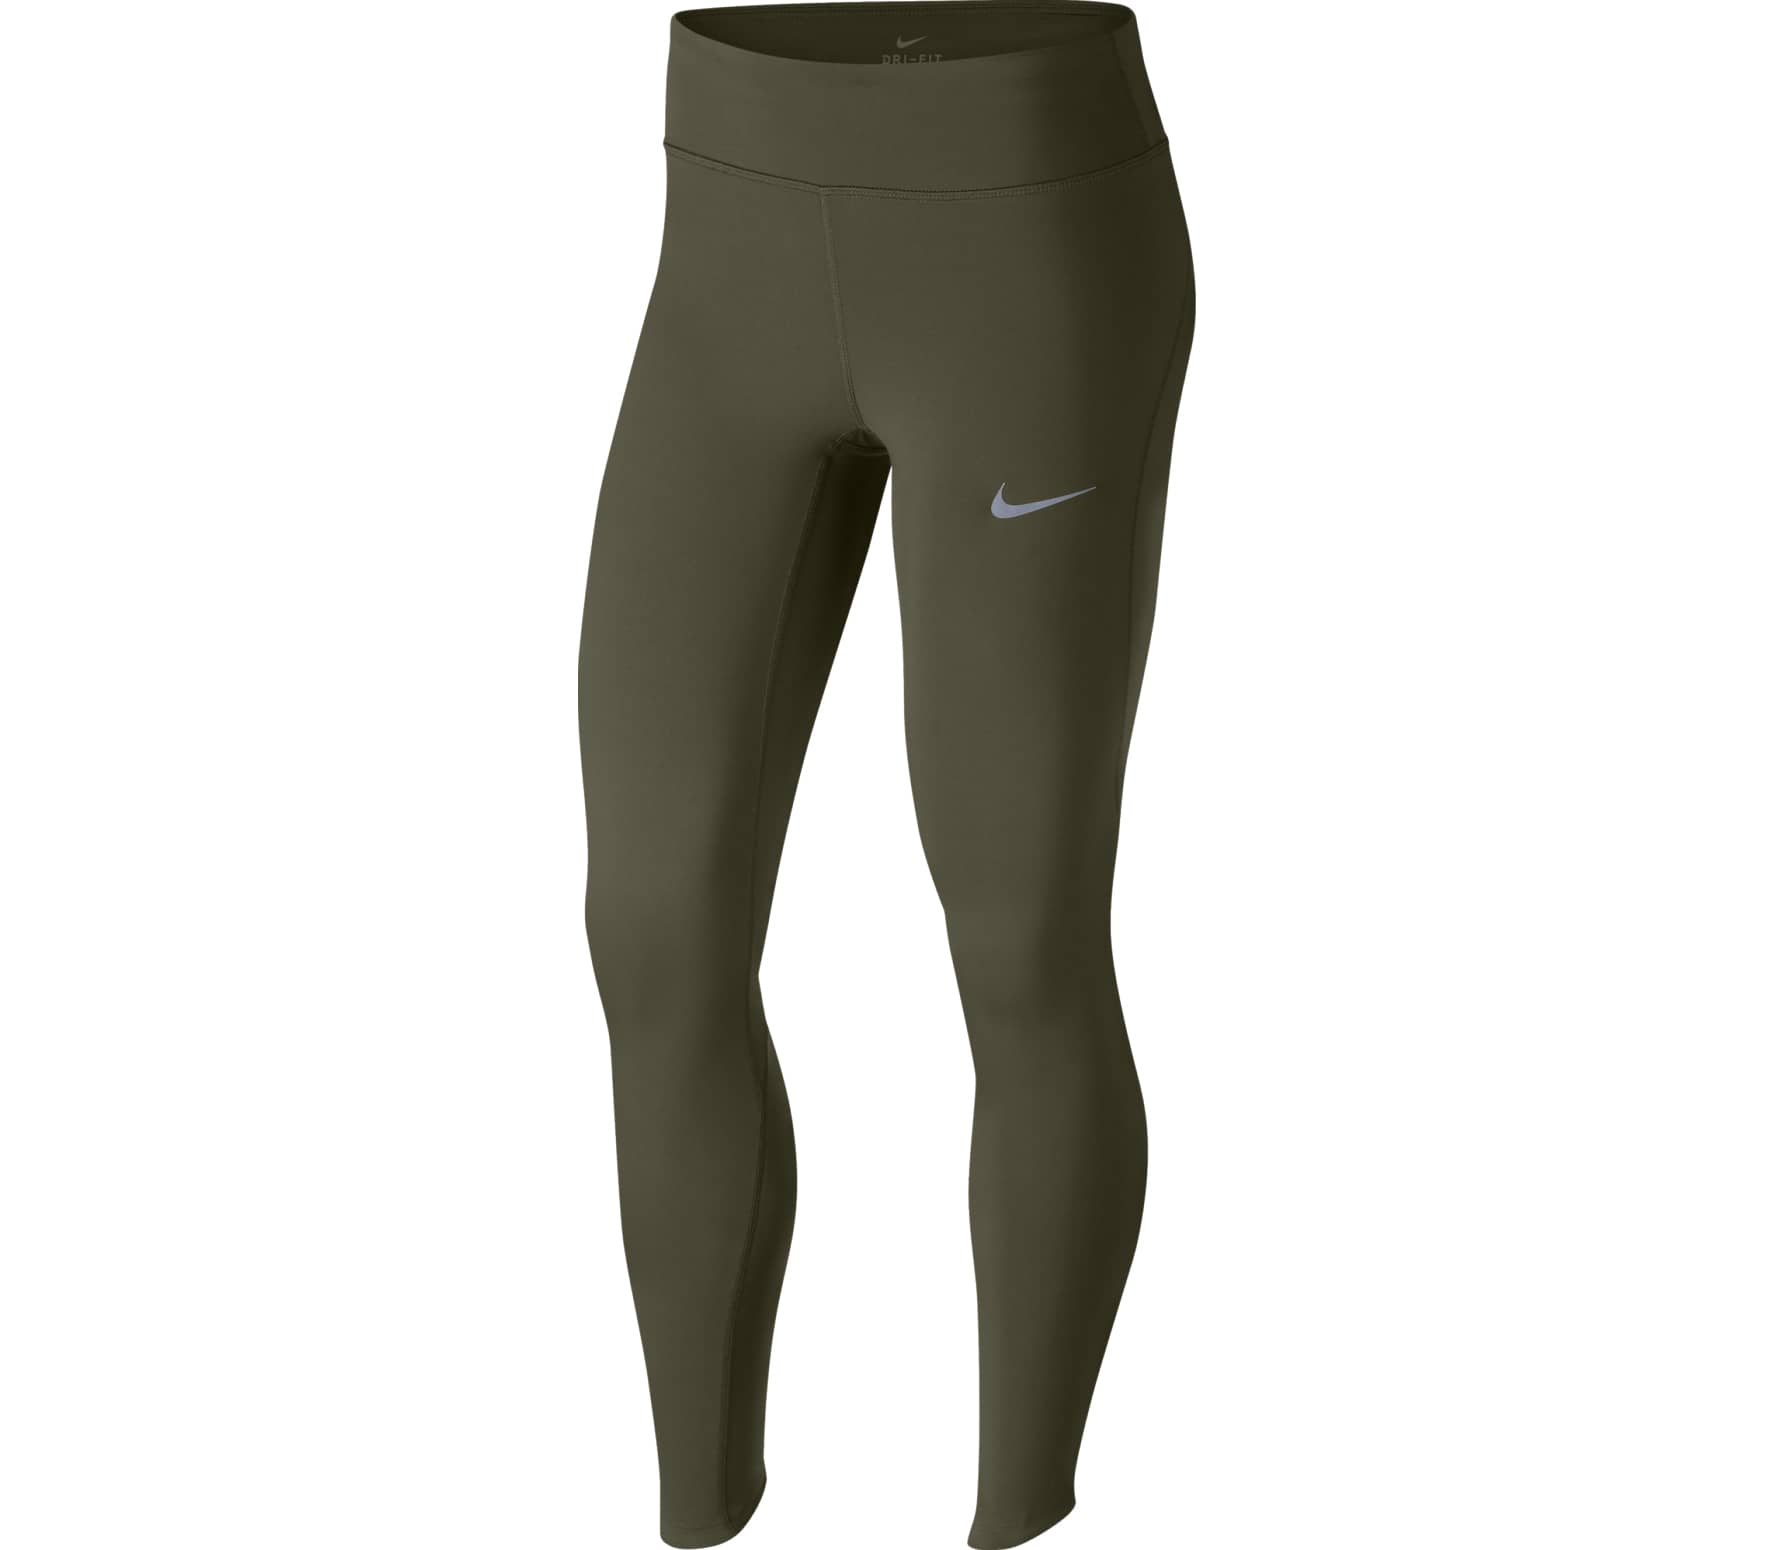 c25753e8a8a7f3 Nike - Epic Lux women's running pants (green) - buy it at the Keller ...